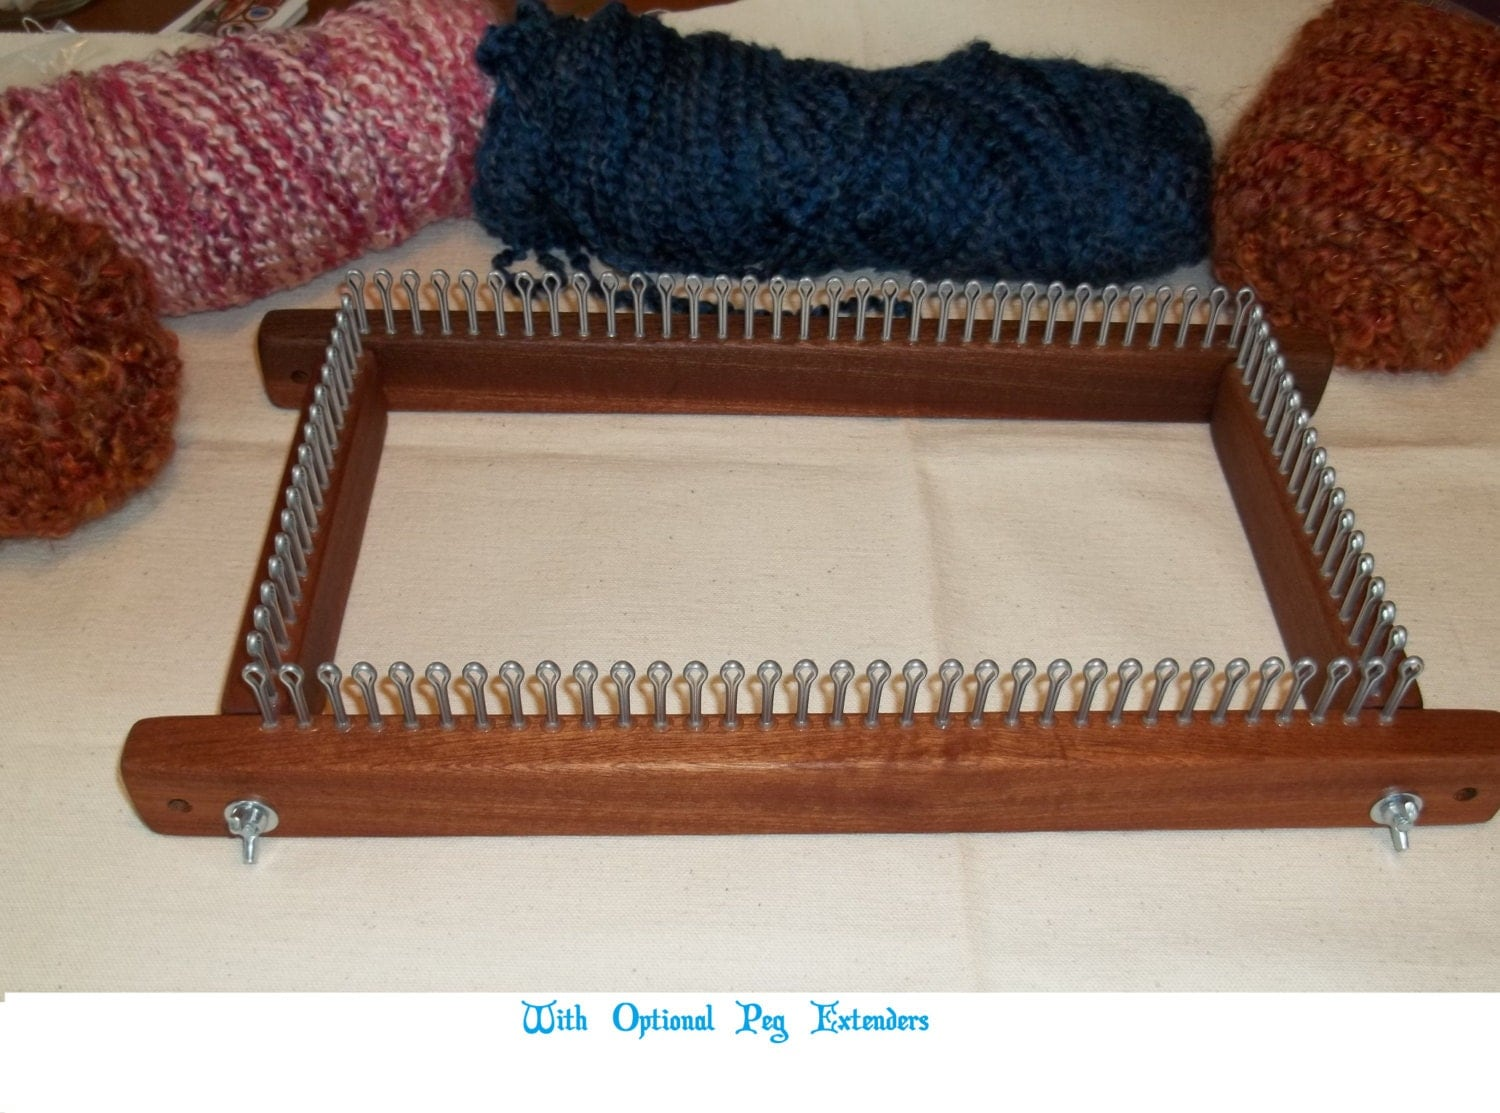 12 Knitting Board / Long Loom Any Gauge by CottageLooms on Etsy